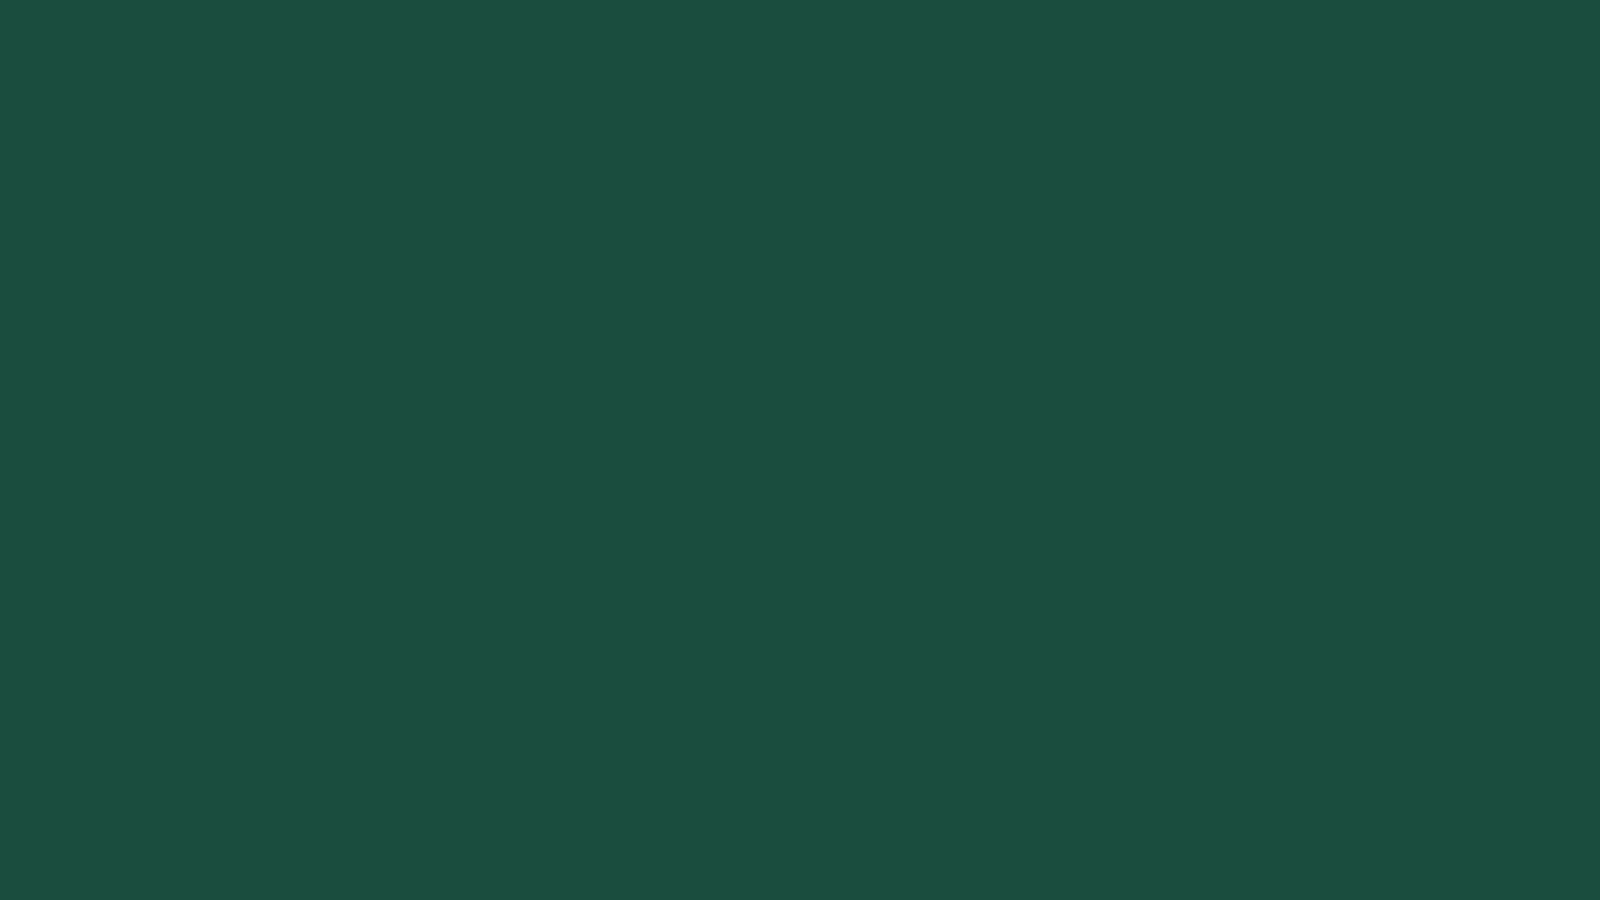 1600x900 English Green Solid Color Background